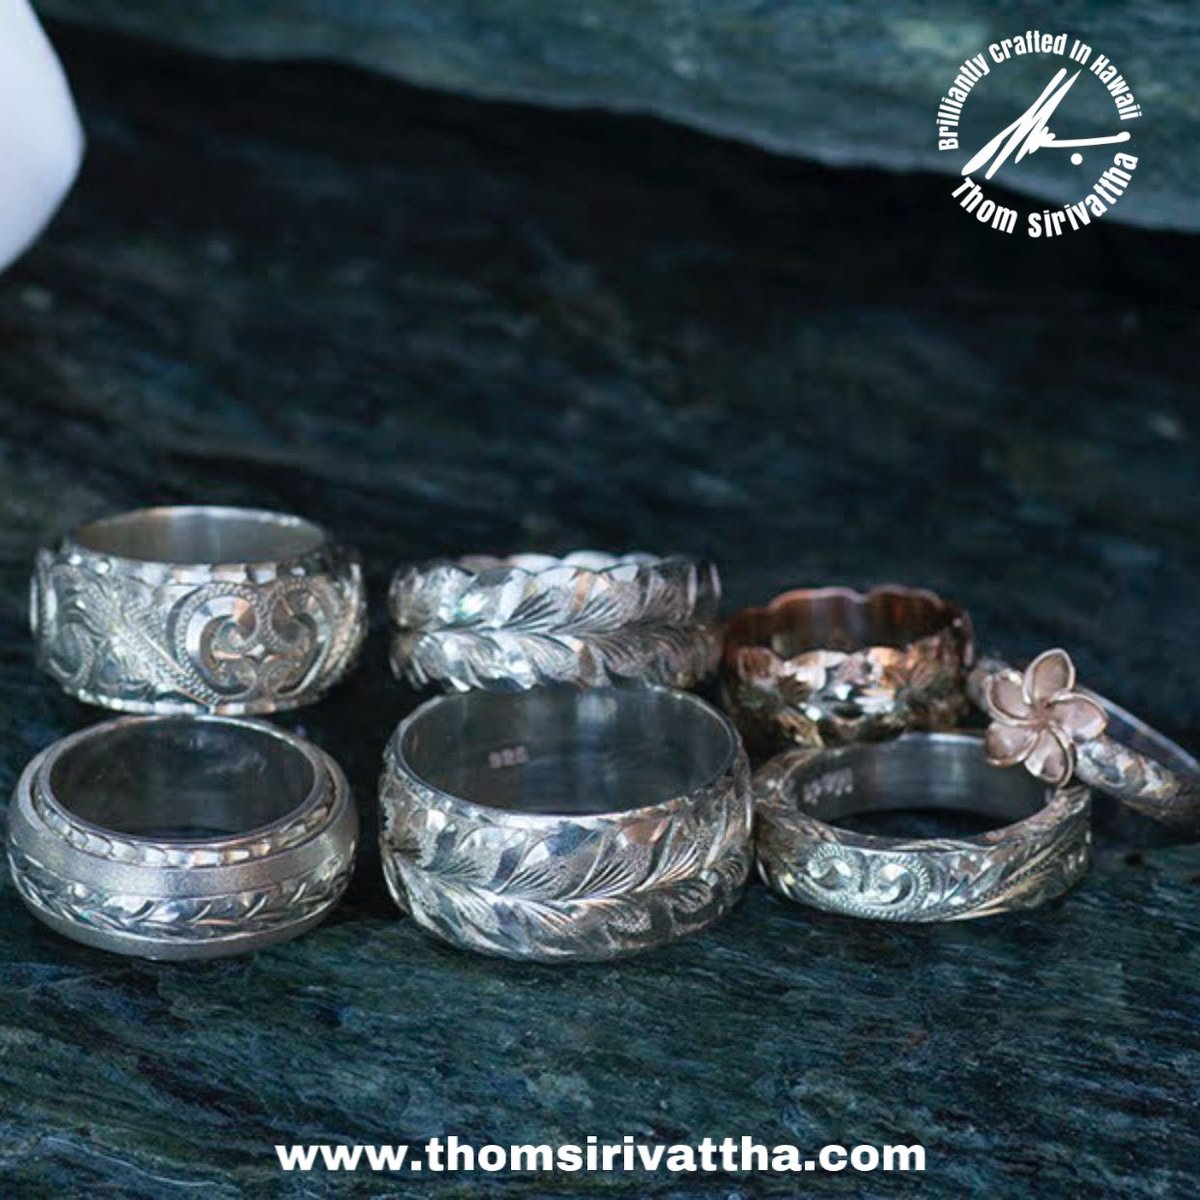 """It's not too late to """"ring"""" in 2021 with some bling! Choose from my collection of beautiful designs and engraving styles.  #thomsirivattha #lahanajewelry #brilliantlycraftedinhawaii #hawaiiartists #hawaii #madeinhawaii #hawaiilife #shoplocal #hawaiianjewellery #ring"""